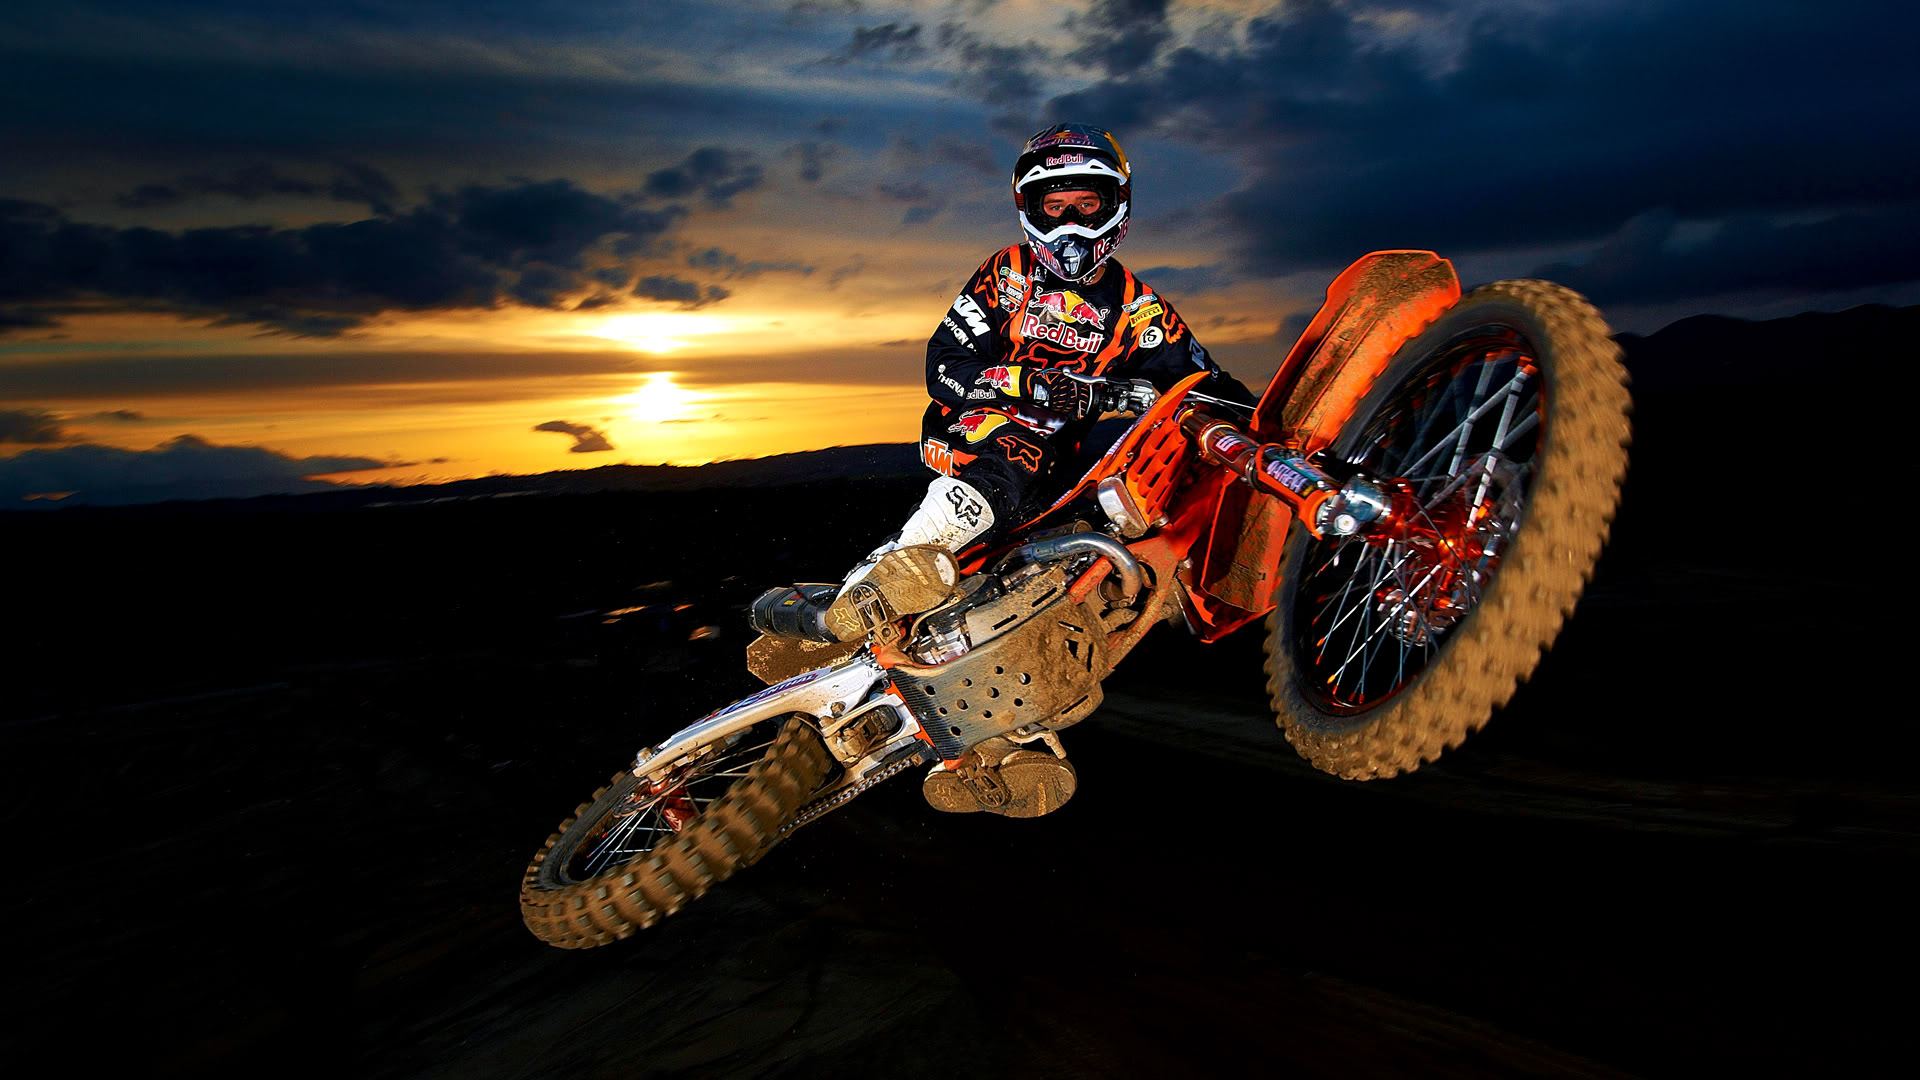 Afternoon Motocross Style HD Wallpapers 1920x1080